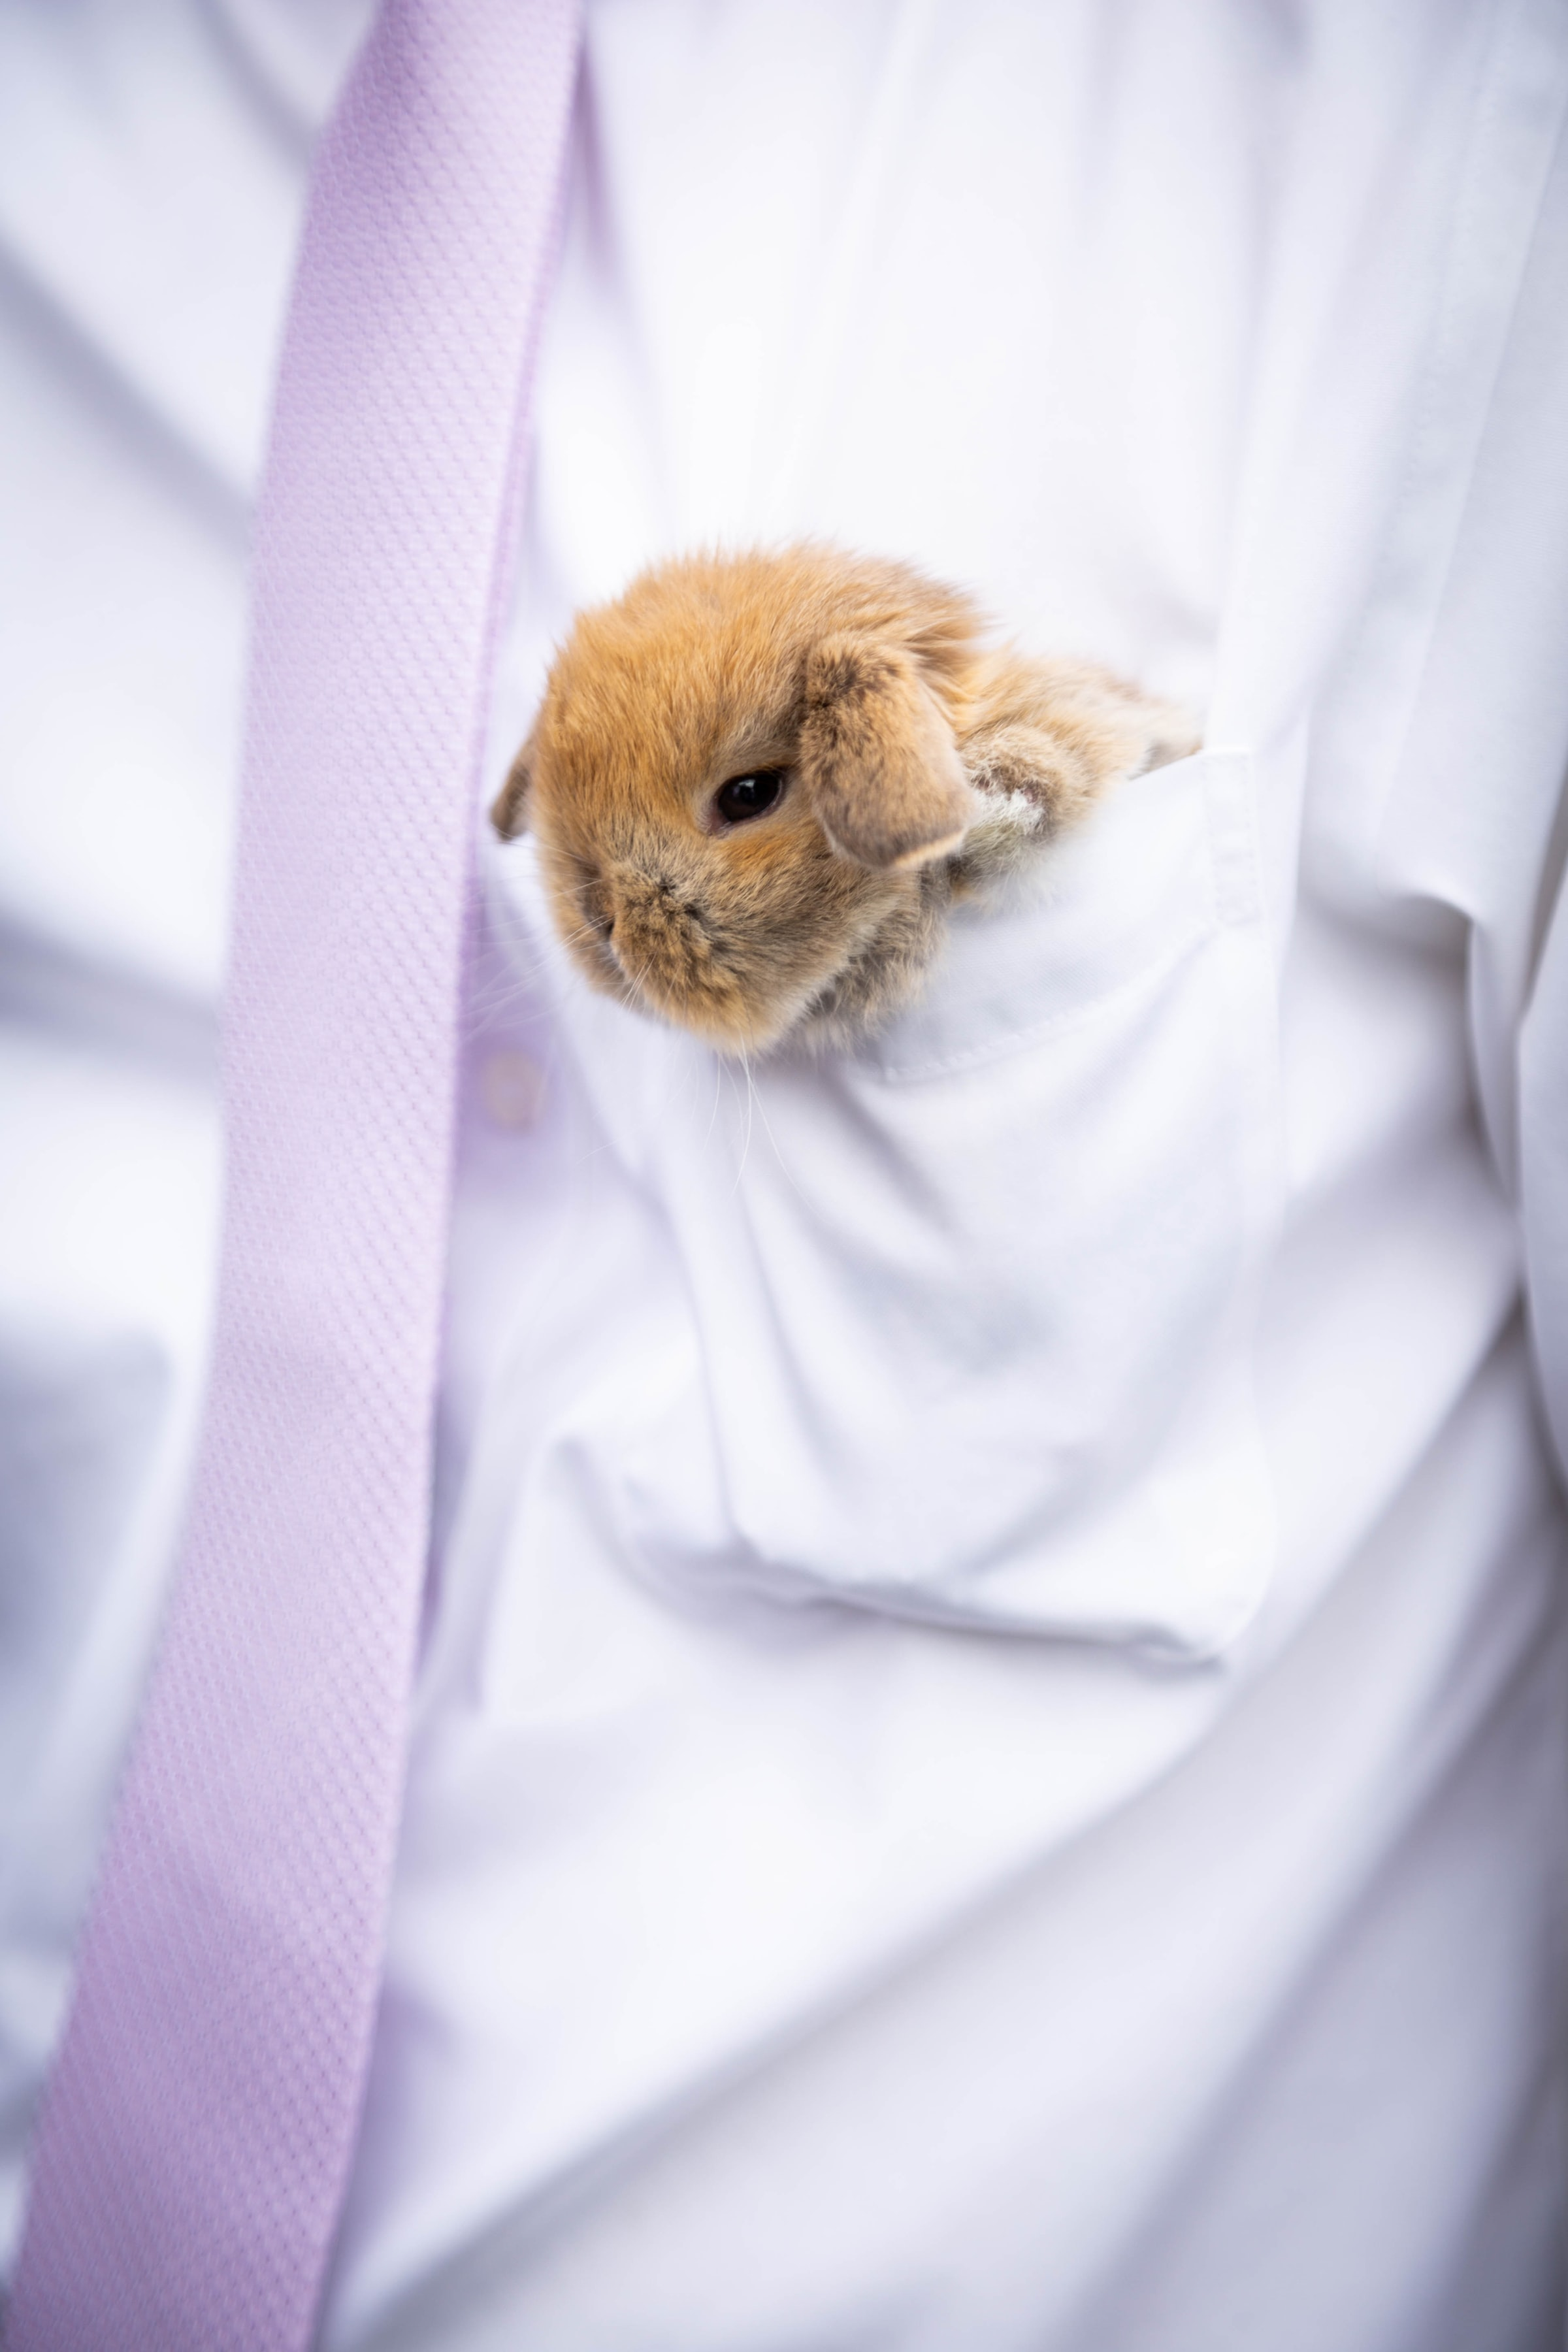 104655 download wallpaper Animals, Rabbit, Hare, Nice, Sweetheart, Fluffy screensavers and pictures for free